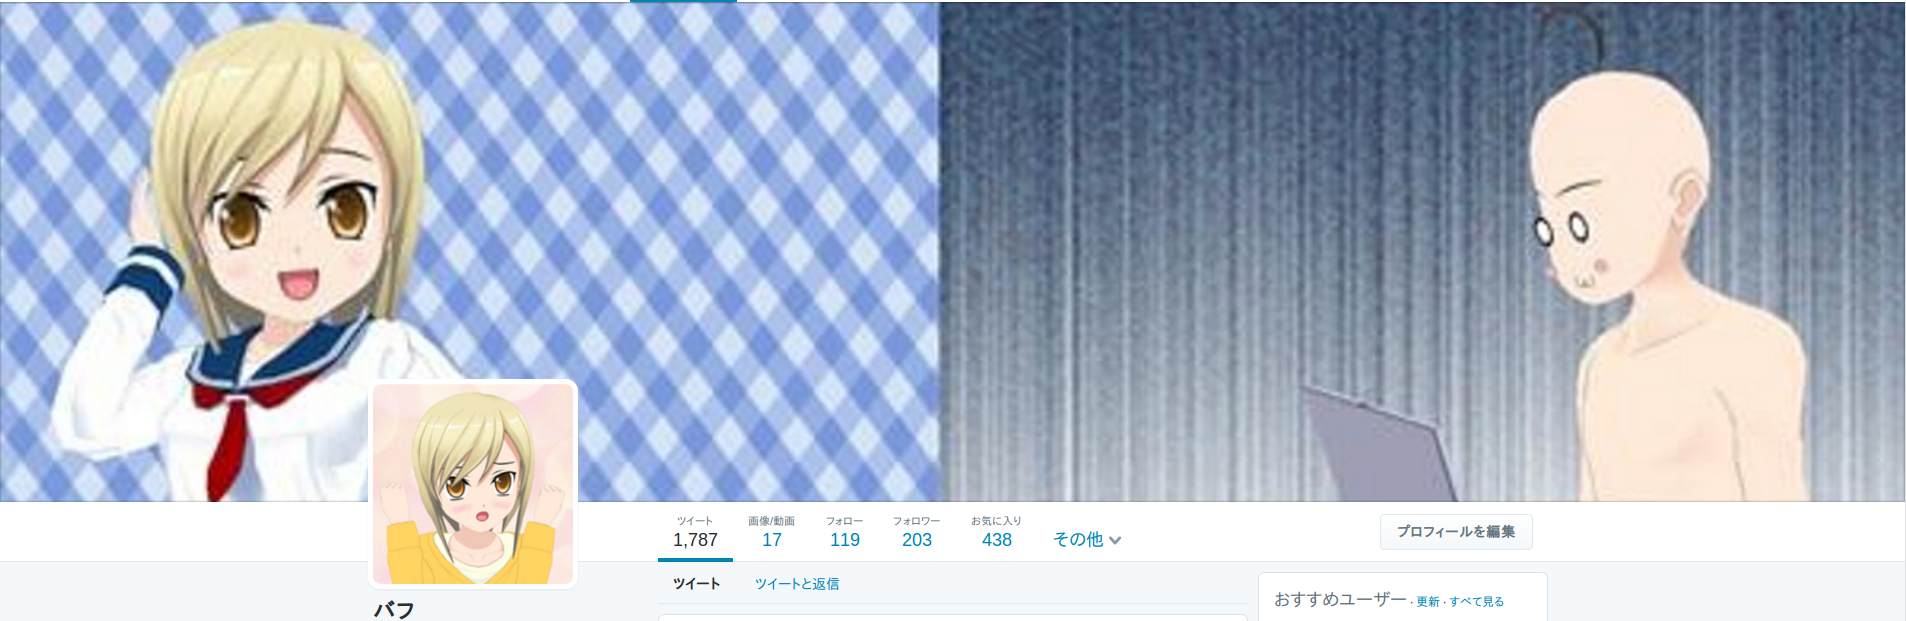 twitter_new_profile